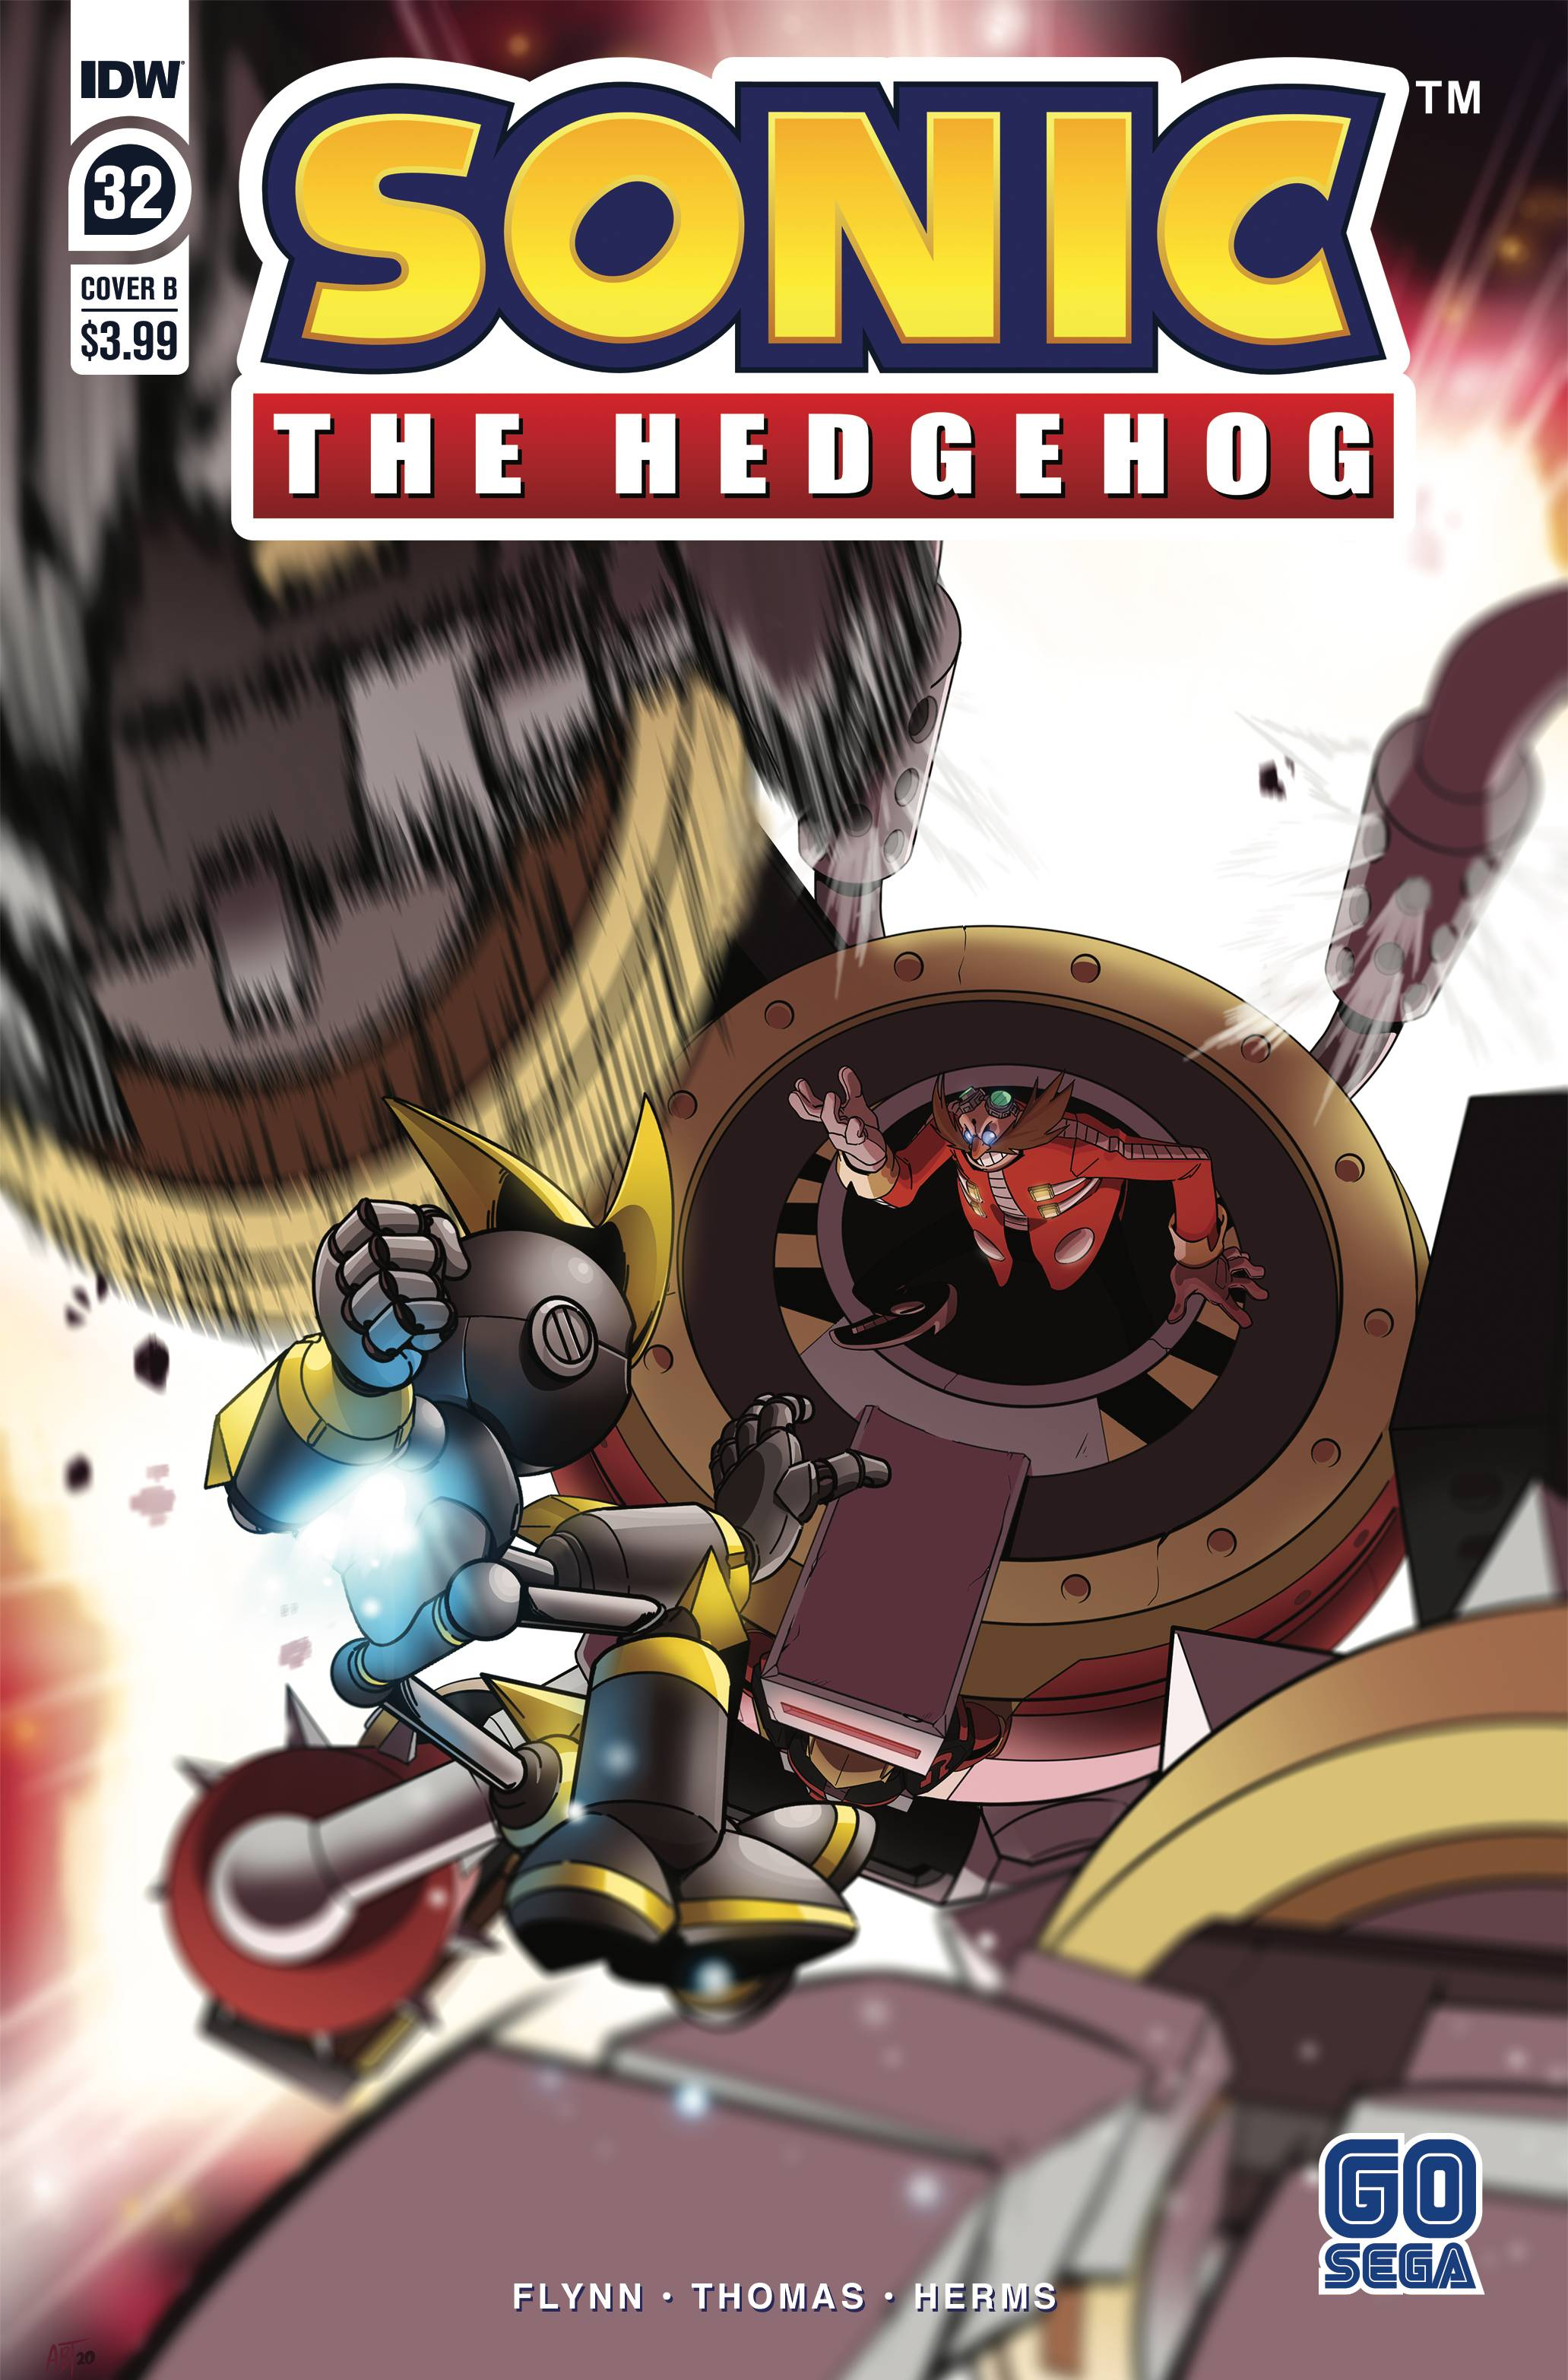 SONIC THE HEDGEHOG #32 CVR B THOMAS